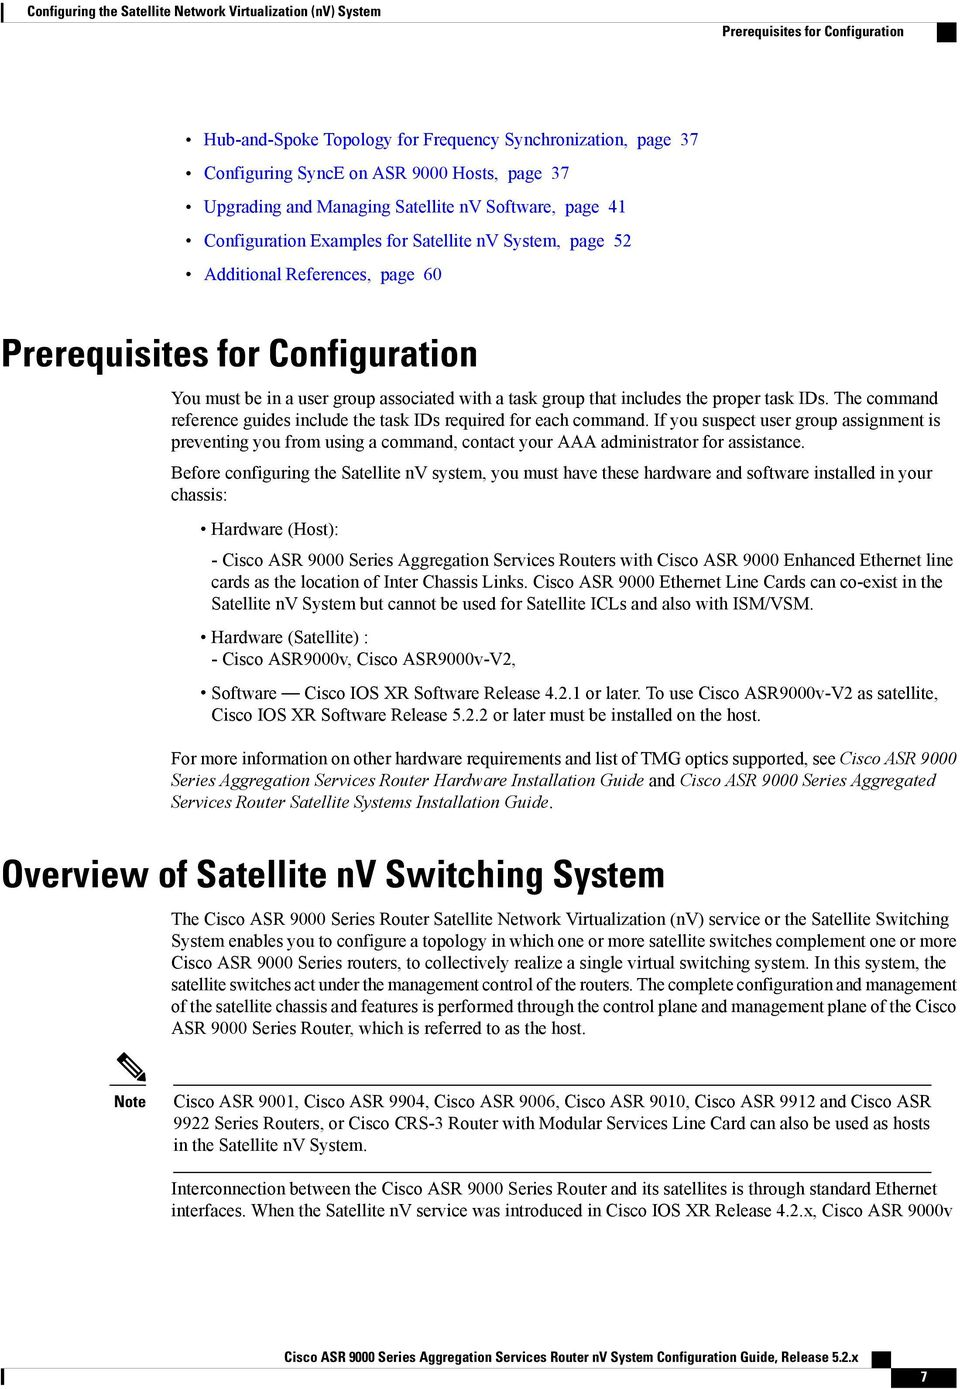 Configuring the Satellite Network Virtualization (nv) System